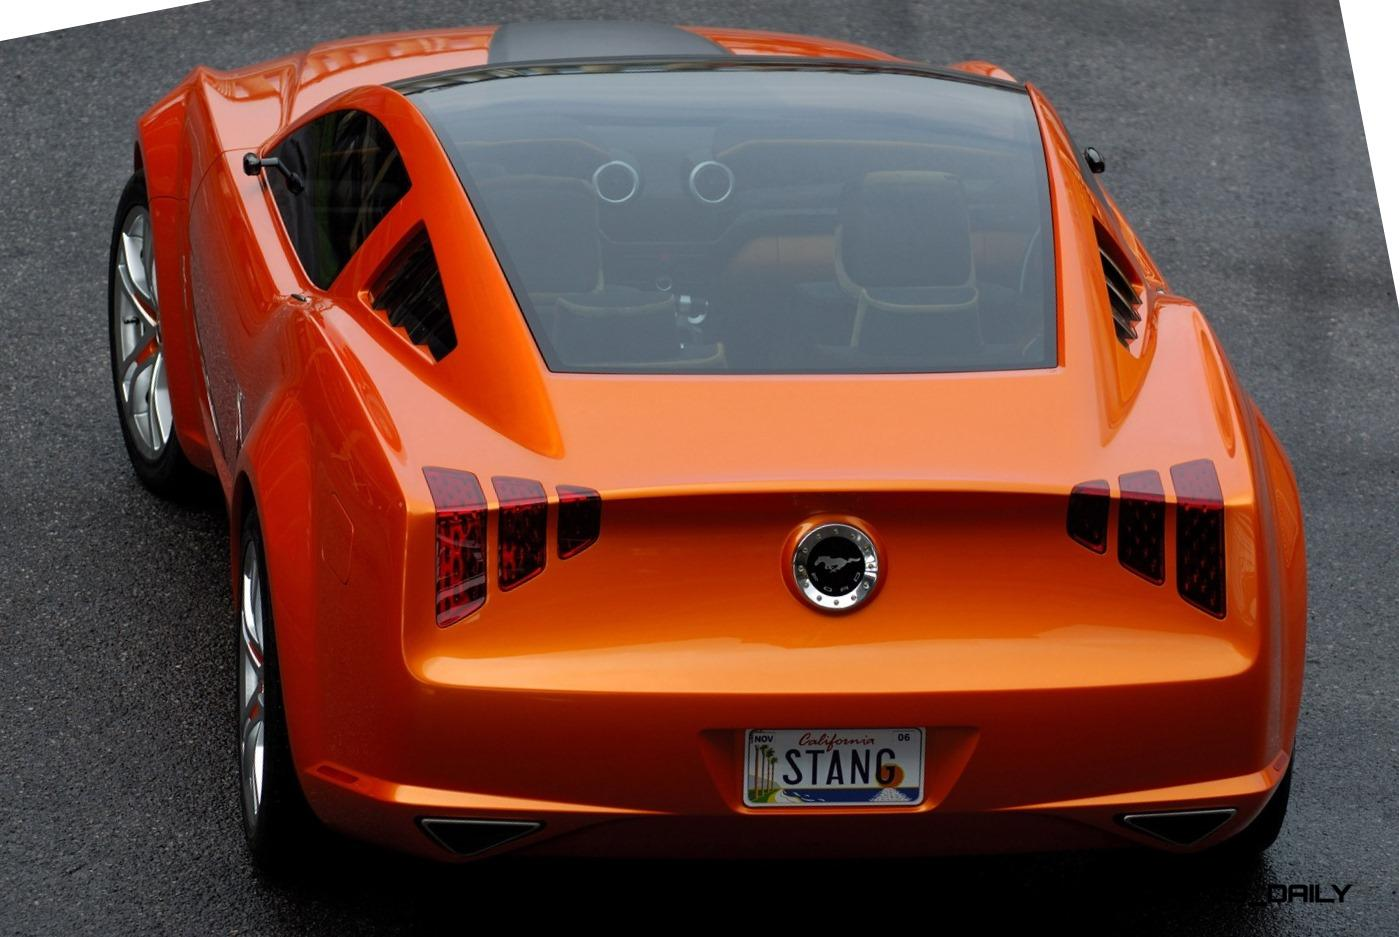 2006 Giugiaro Ford Mustang Concept Was Ringer vs In-House Ford Designs 16